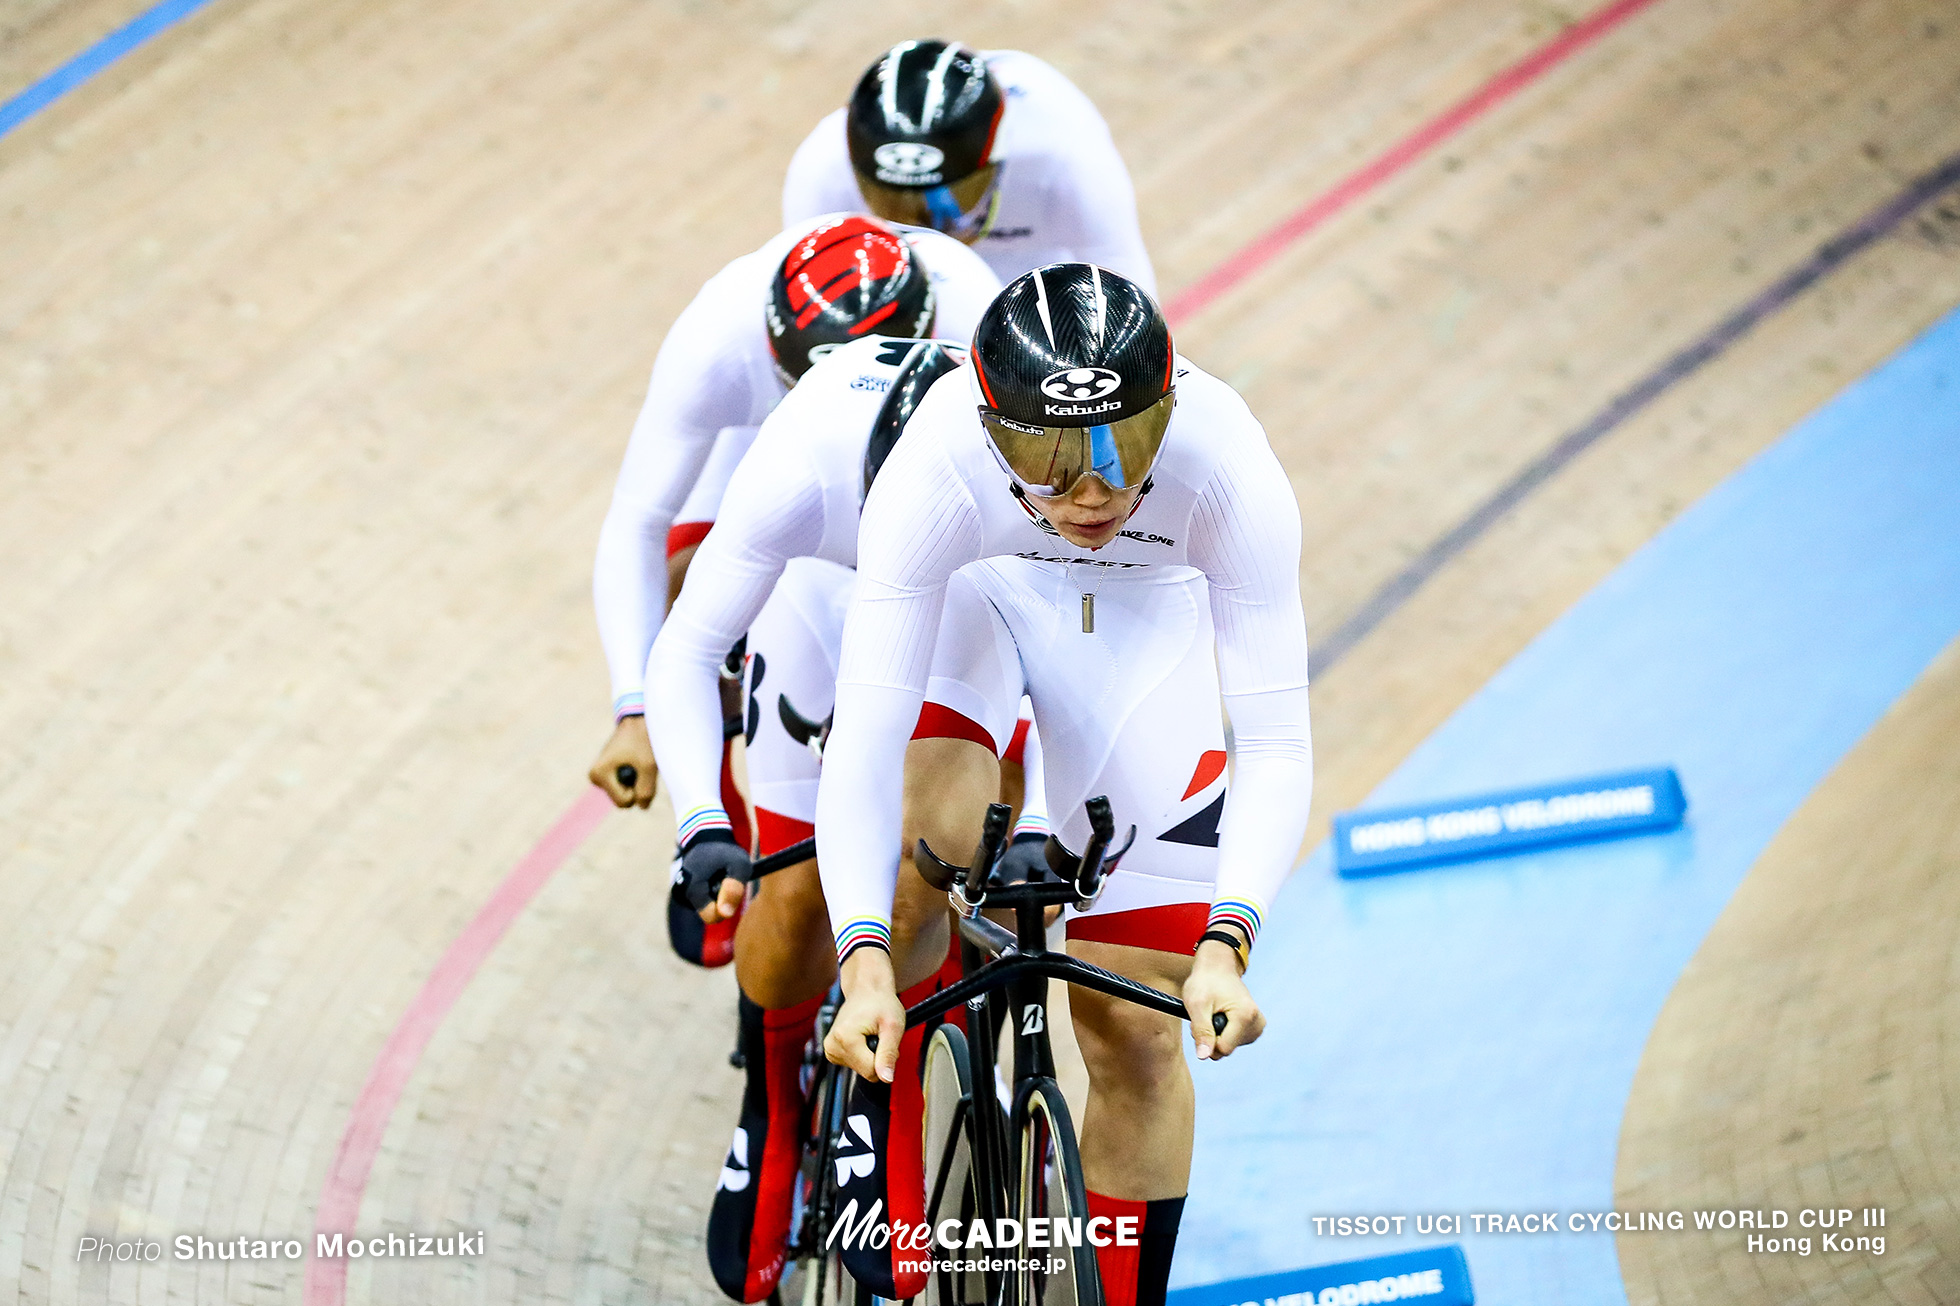 1st Round / Men's Team Pursuit / TISSOT UCI TRACK CYCLING WORLD CUP III, Hong Kong